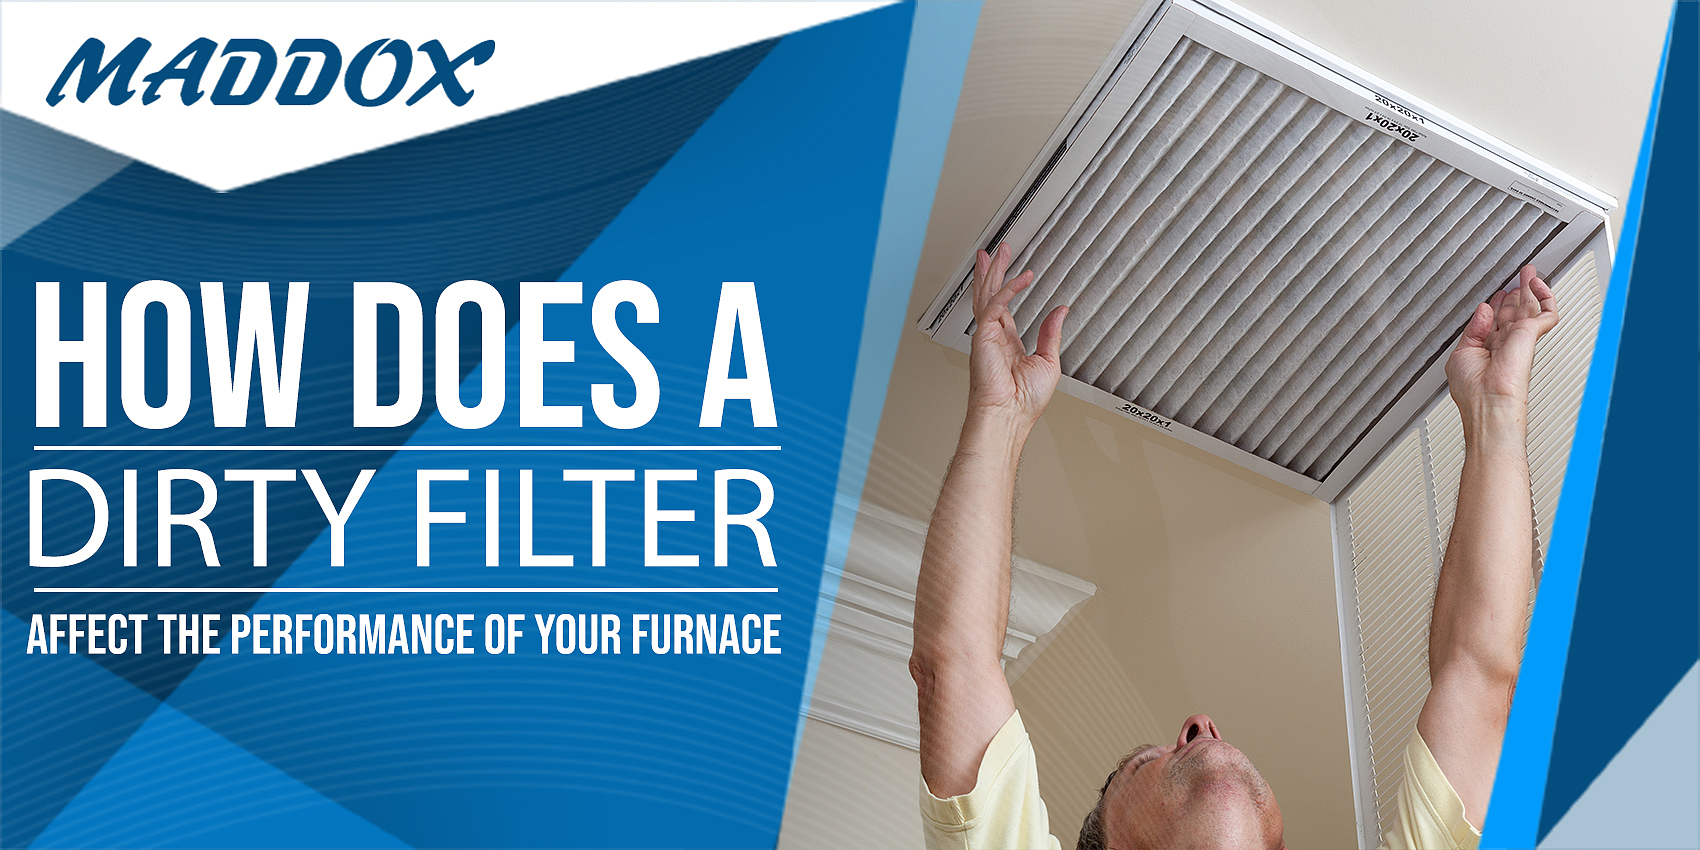 How Does a Dirty Filter Affect The Performance of Your Furnace